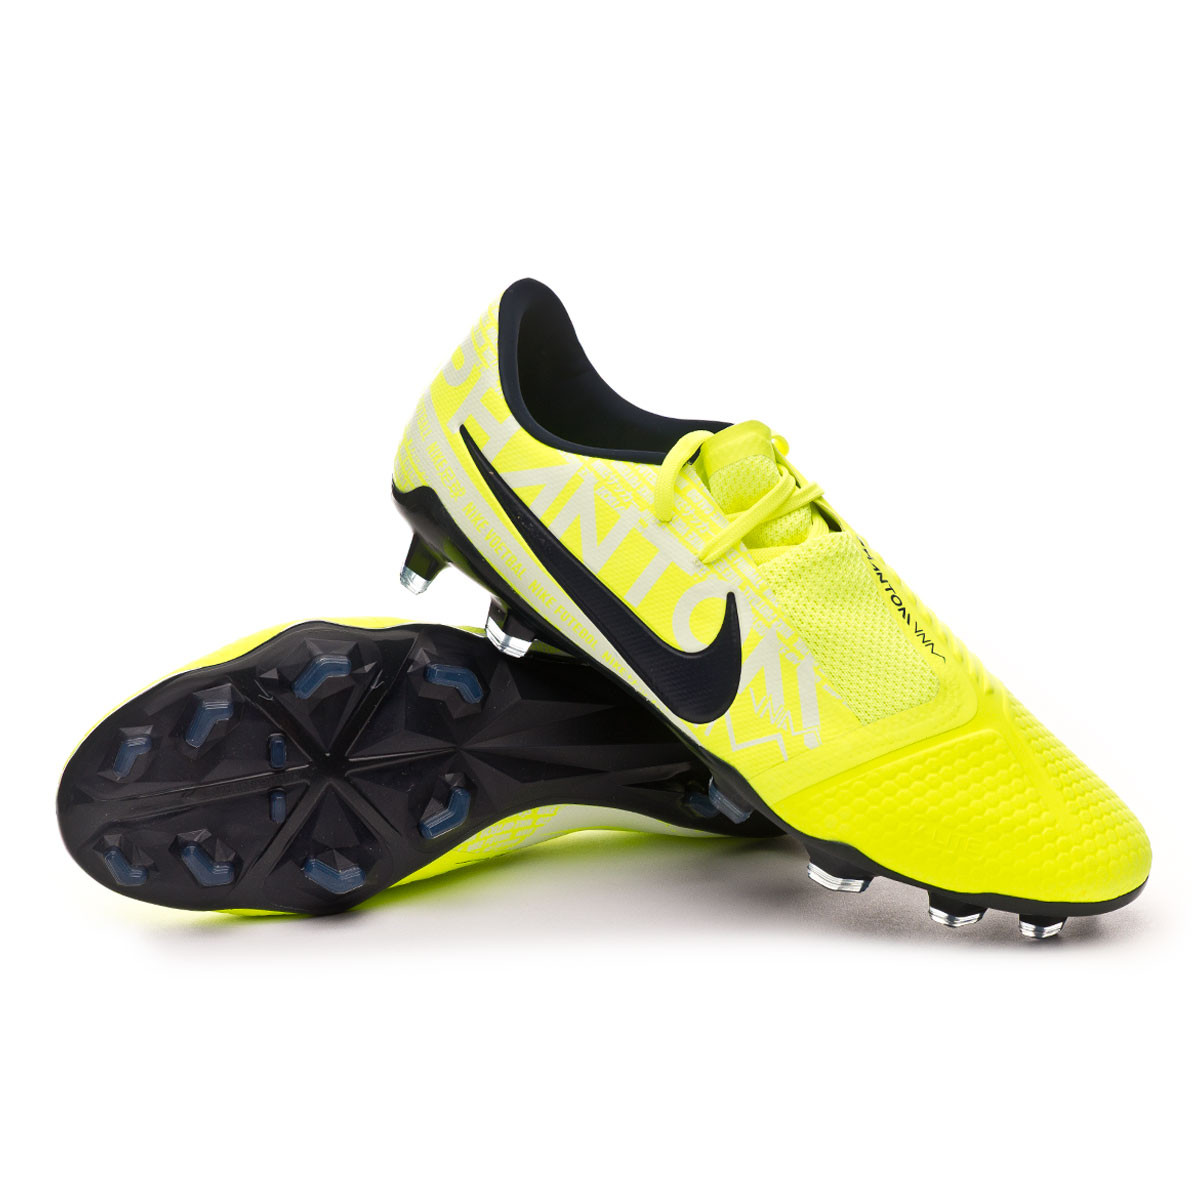 Nike Phantom Venom Elite FG Football Boots Fútbol Emotion